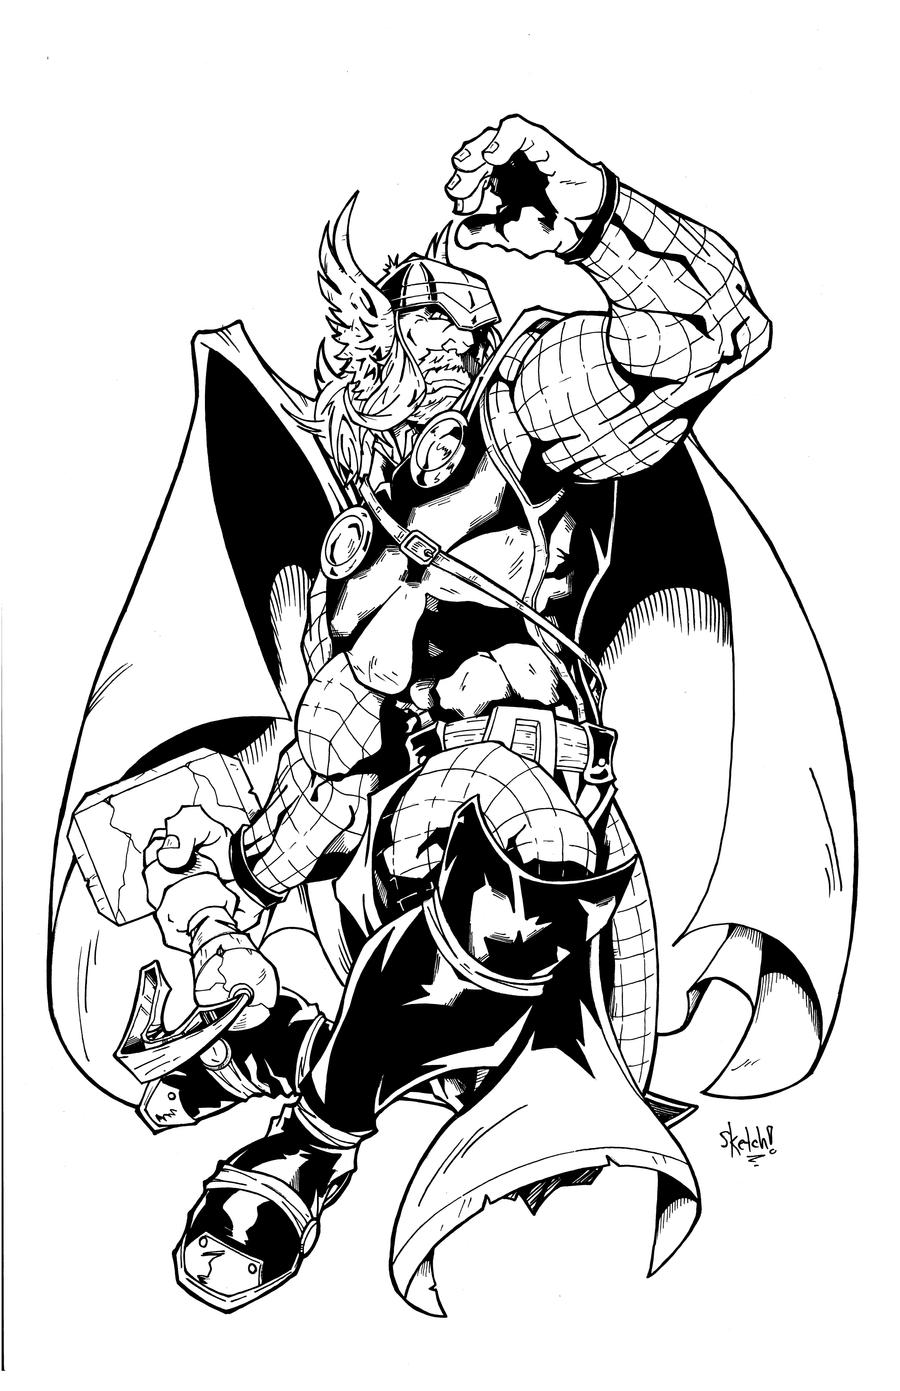 the mighty thor inks by sketchheavy on deviantart